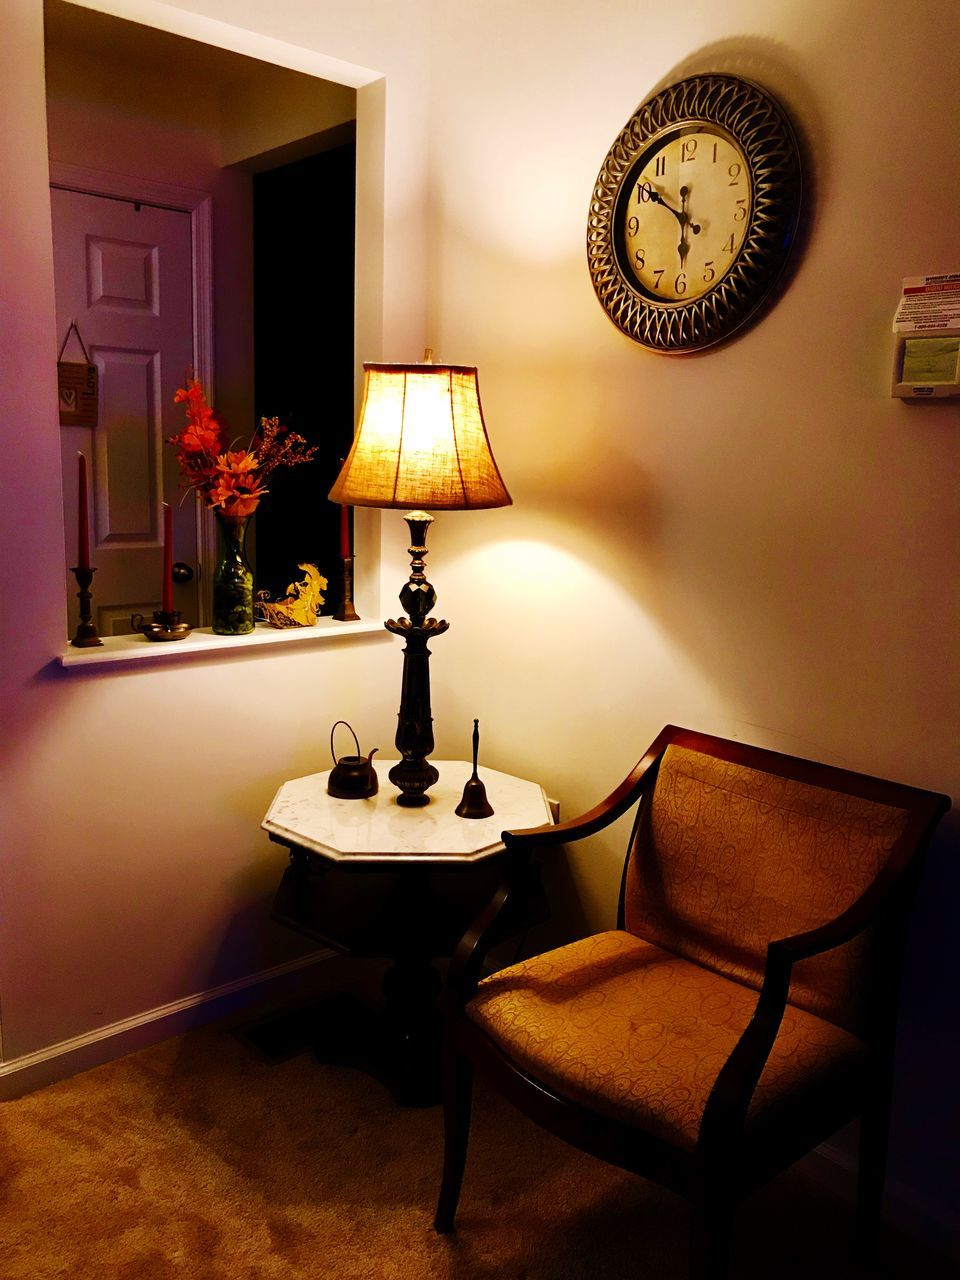 lighting equipment, illuminated, indoors, table, electric lamp, seat, no people, domestic room, home interior, chair, furniture, home, lamp shade, light, absence, clock, side table, home showcase interior, electric light, wall - building feature, luxury